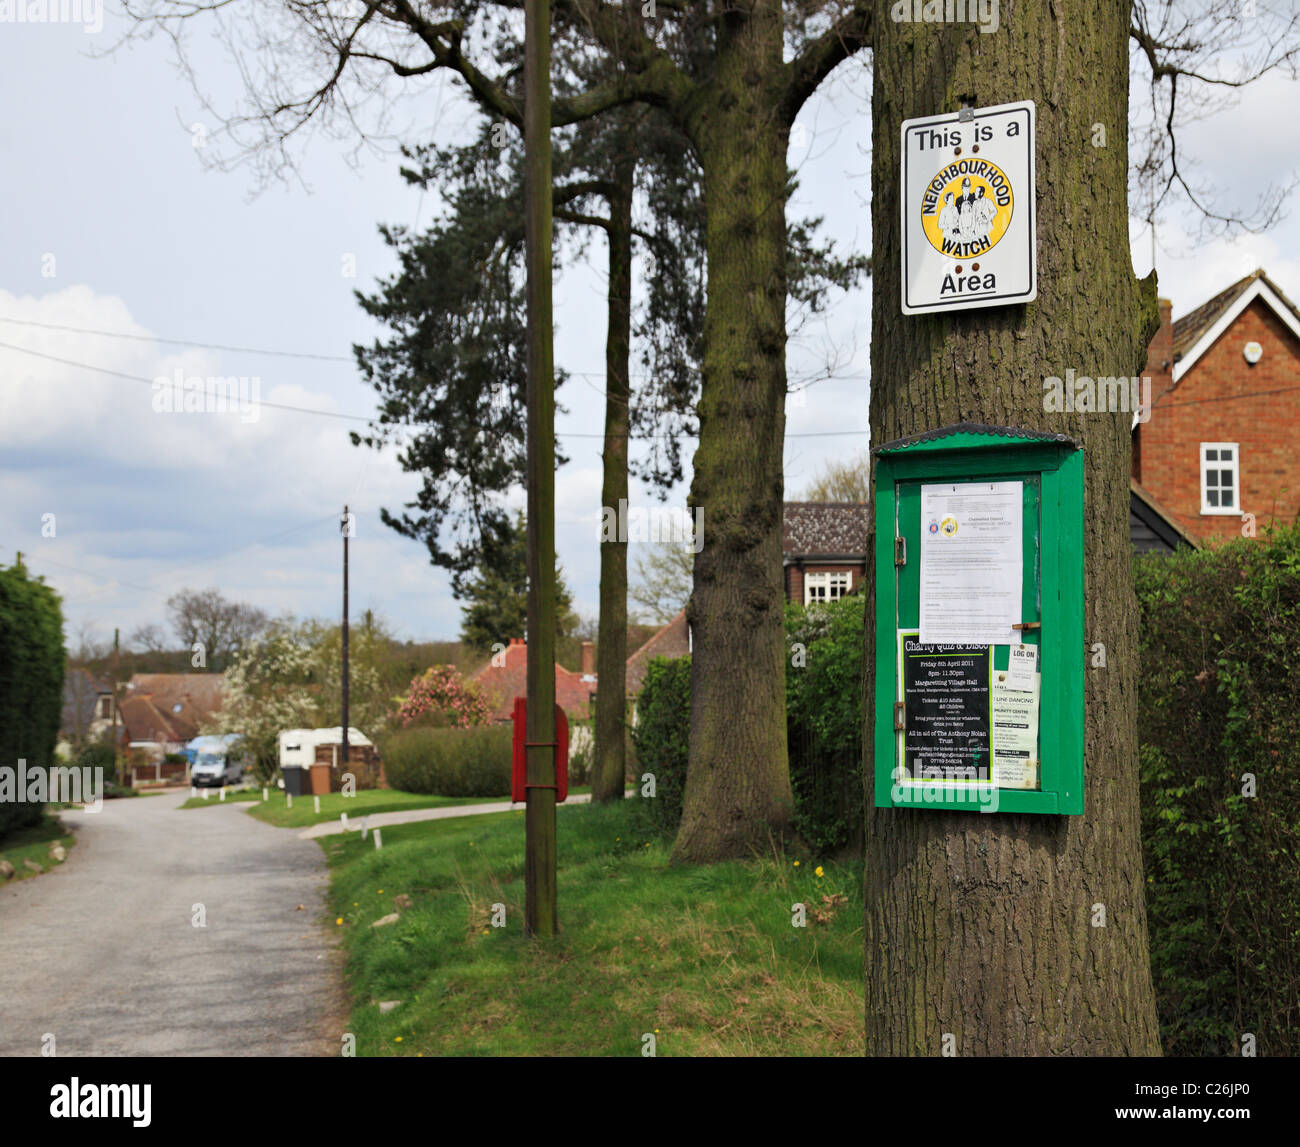 Neighbourhood Watch area sign and information. - Stock Image